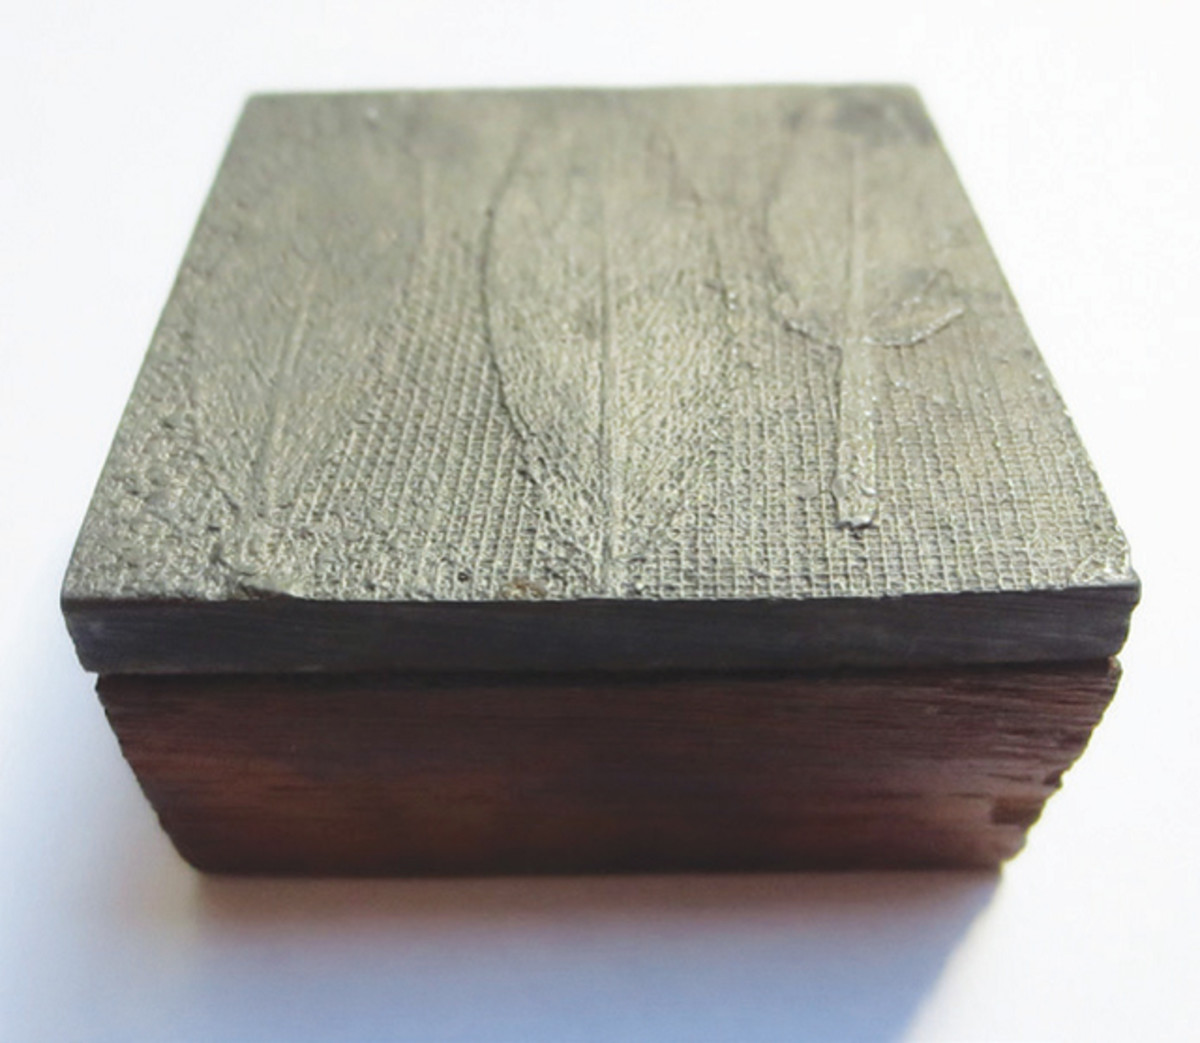 Leaf block believed to have been use to print money. Image courtesy Library Company of Philadelphia.